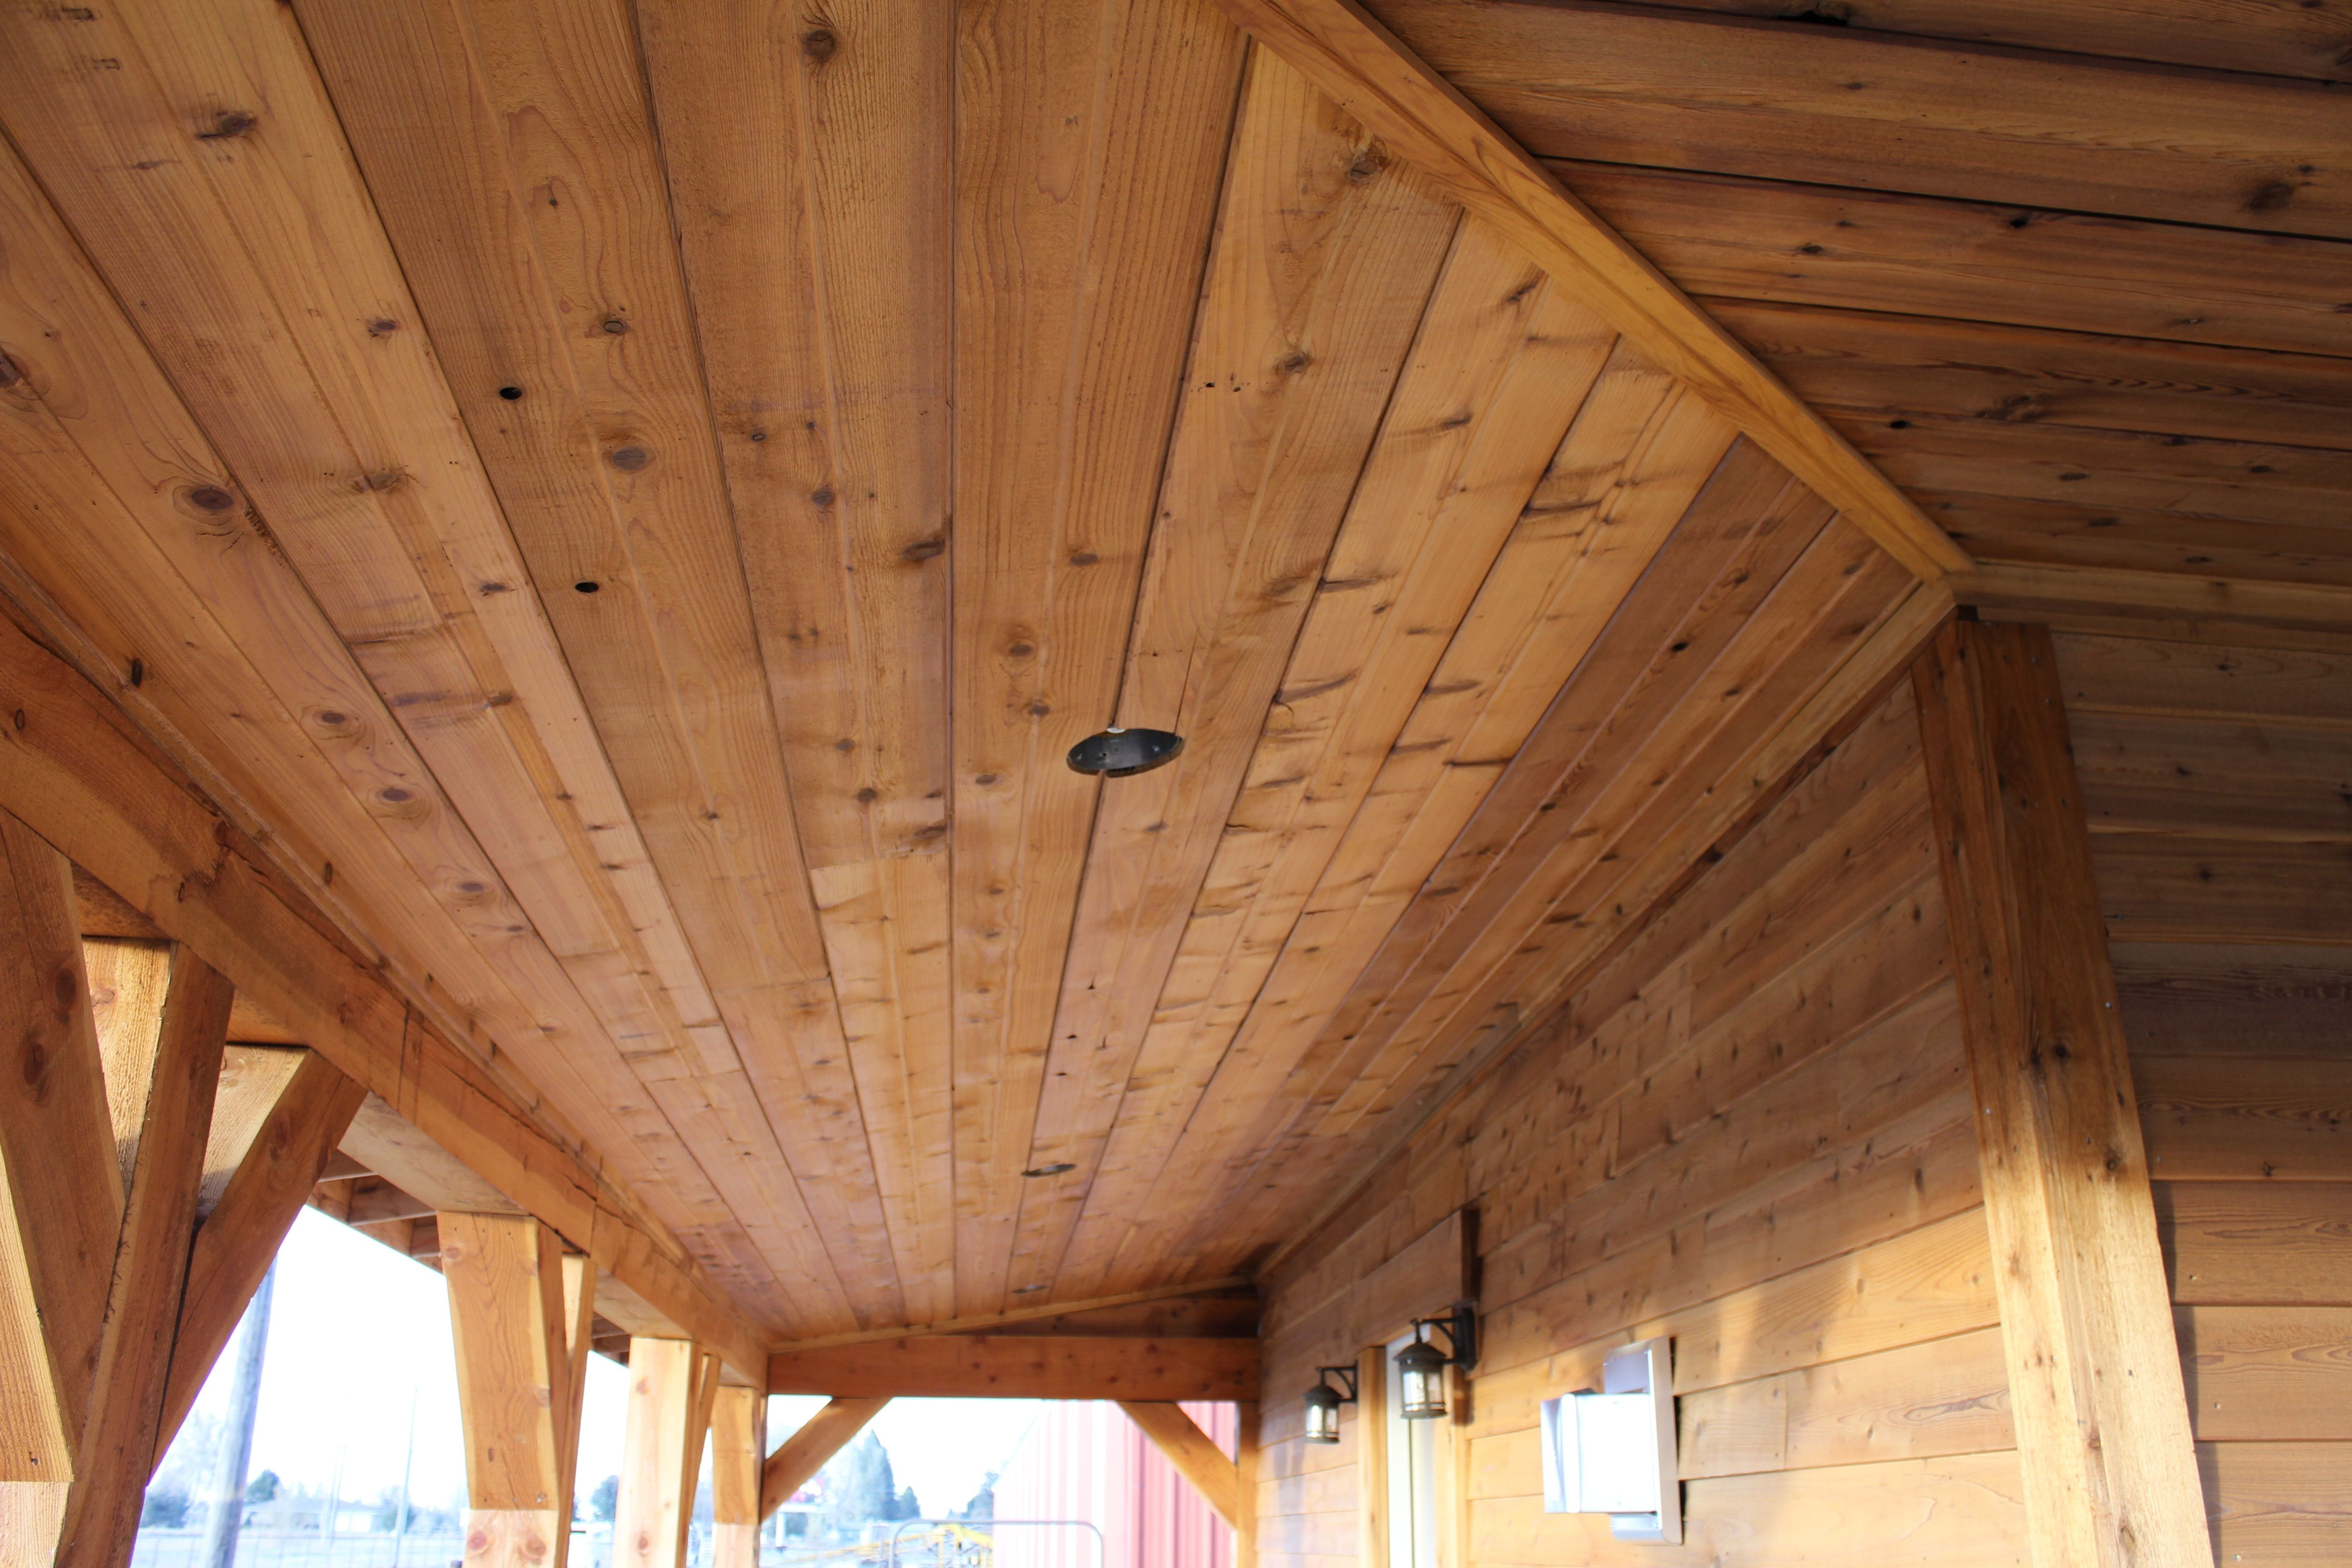 Lumber Supply Utah Cedar Slats Cedar Siding Supplier Rustic Lumber Co Cedar Siding Cedar Siding